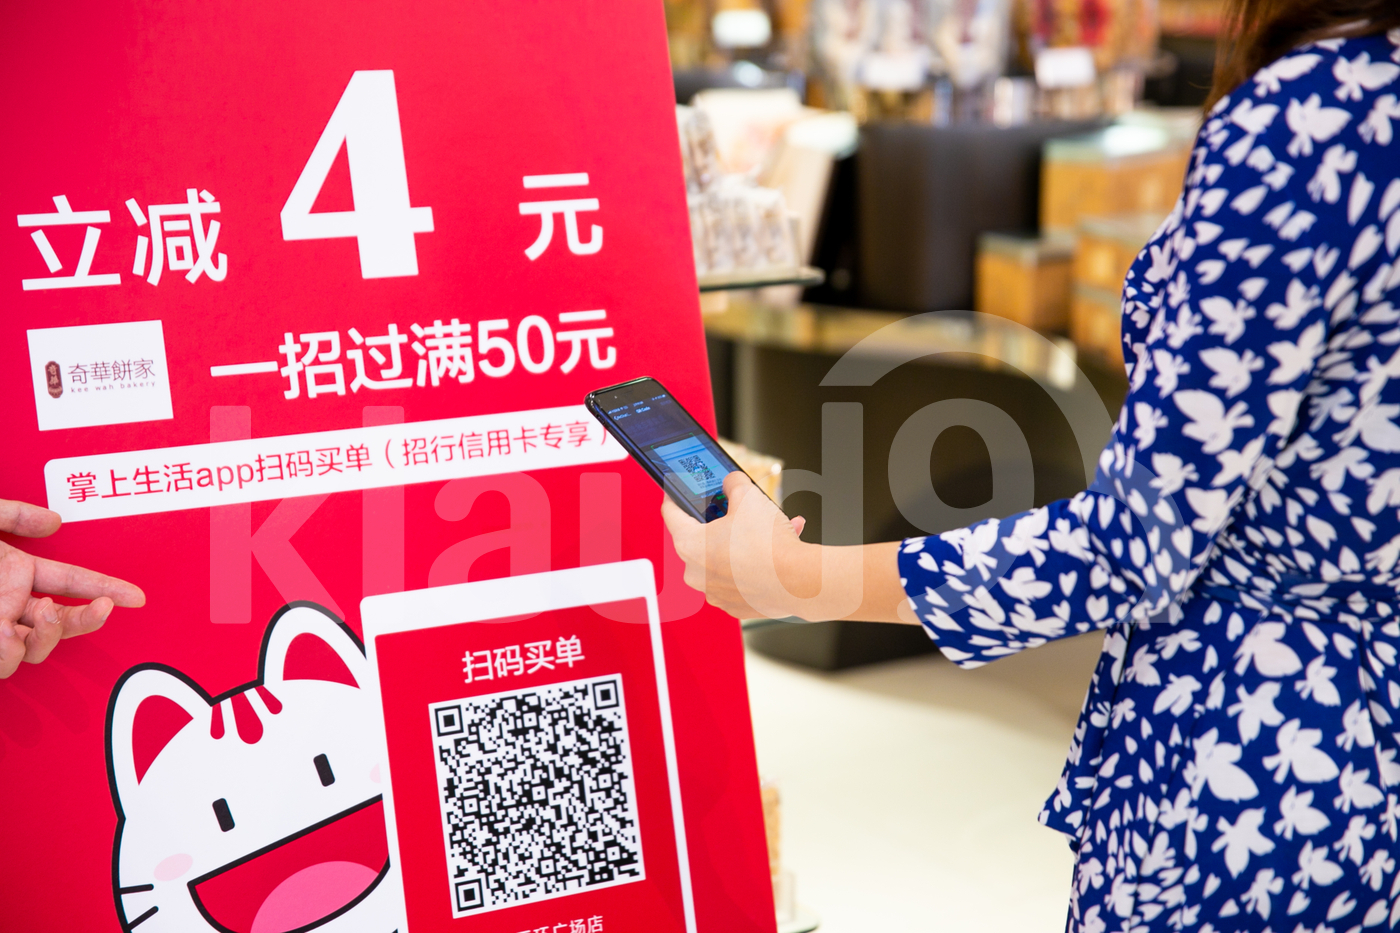 Woman making payment with mobile by scanning QR code in a  shop